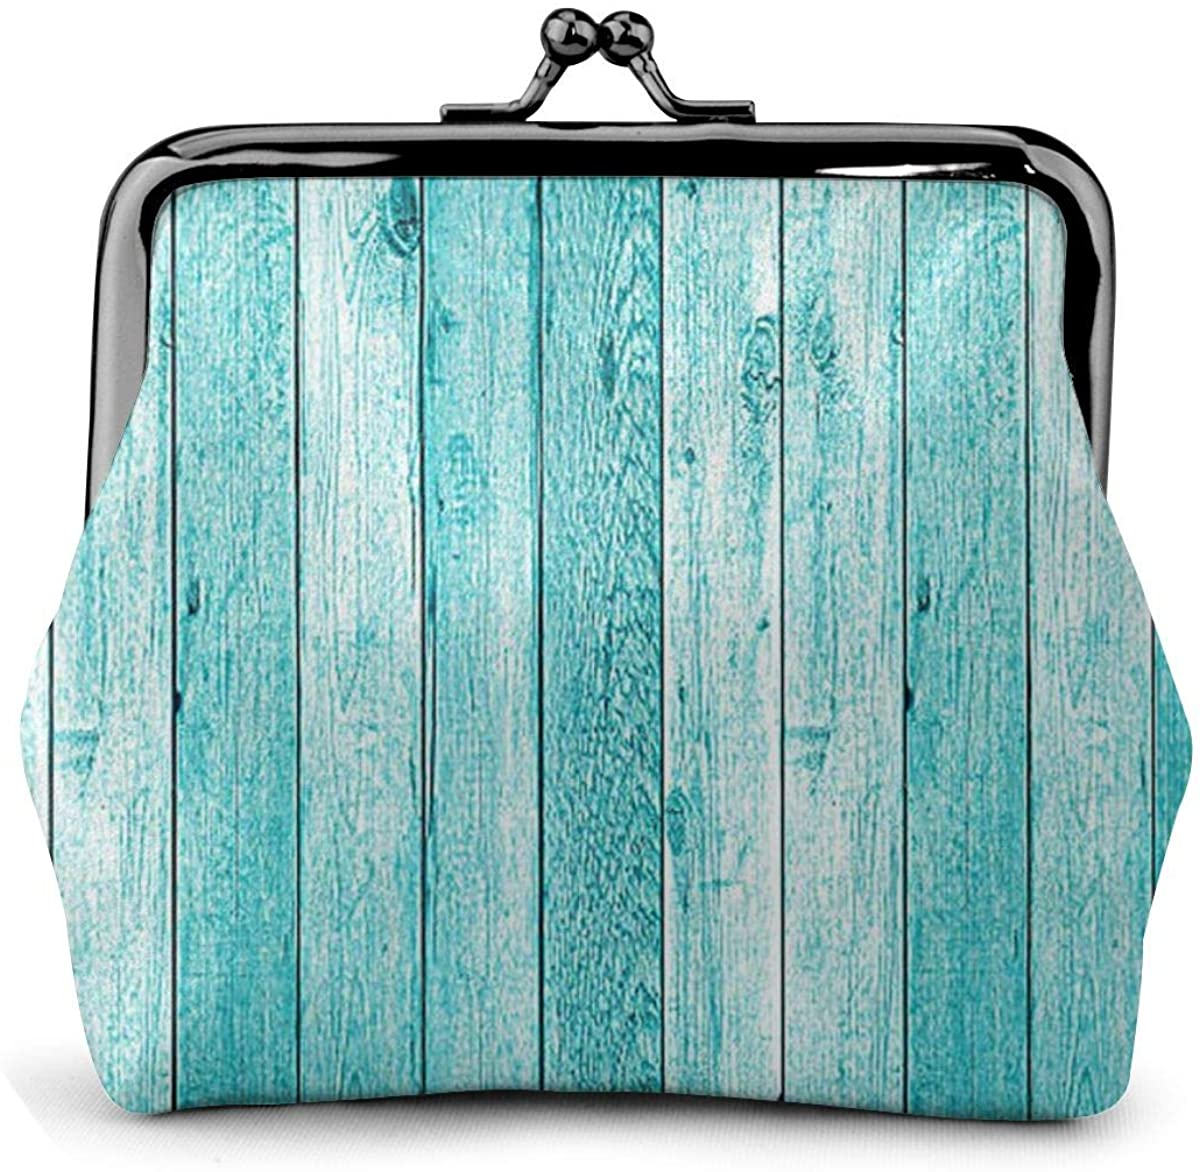 Wooden Planks Texture Wallpaper Pu Leather Exquisite Buckle Coin Purses Vintage Pouch Classic Kiss-Lock Change Purse Wallets Gift